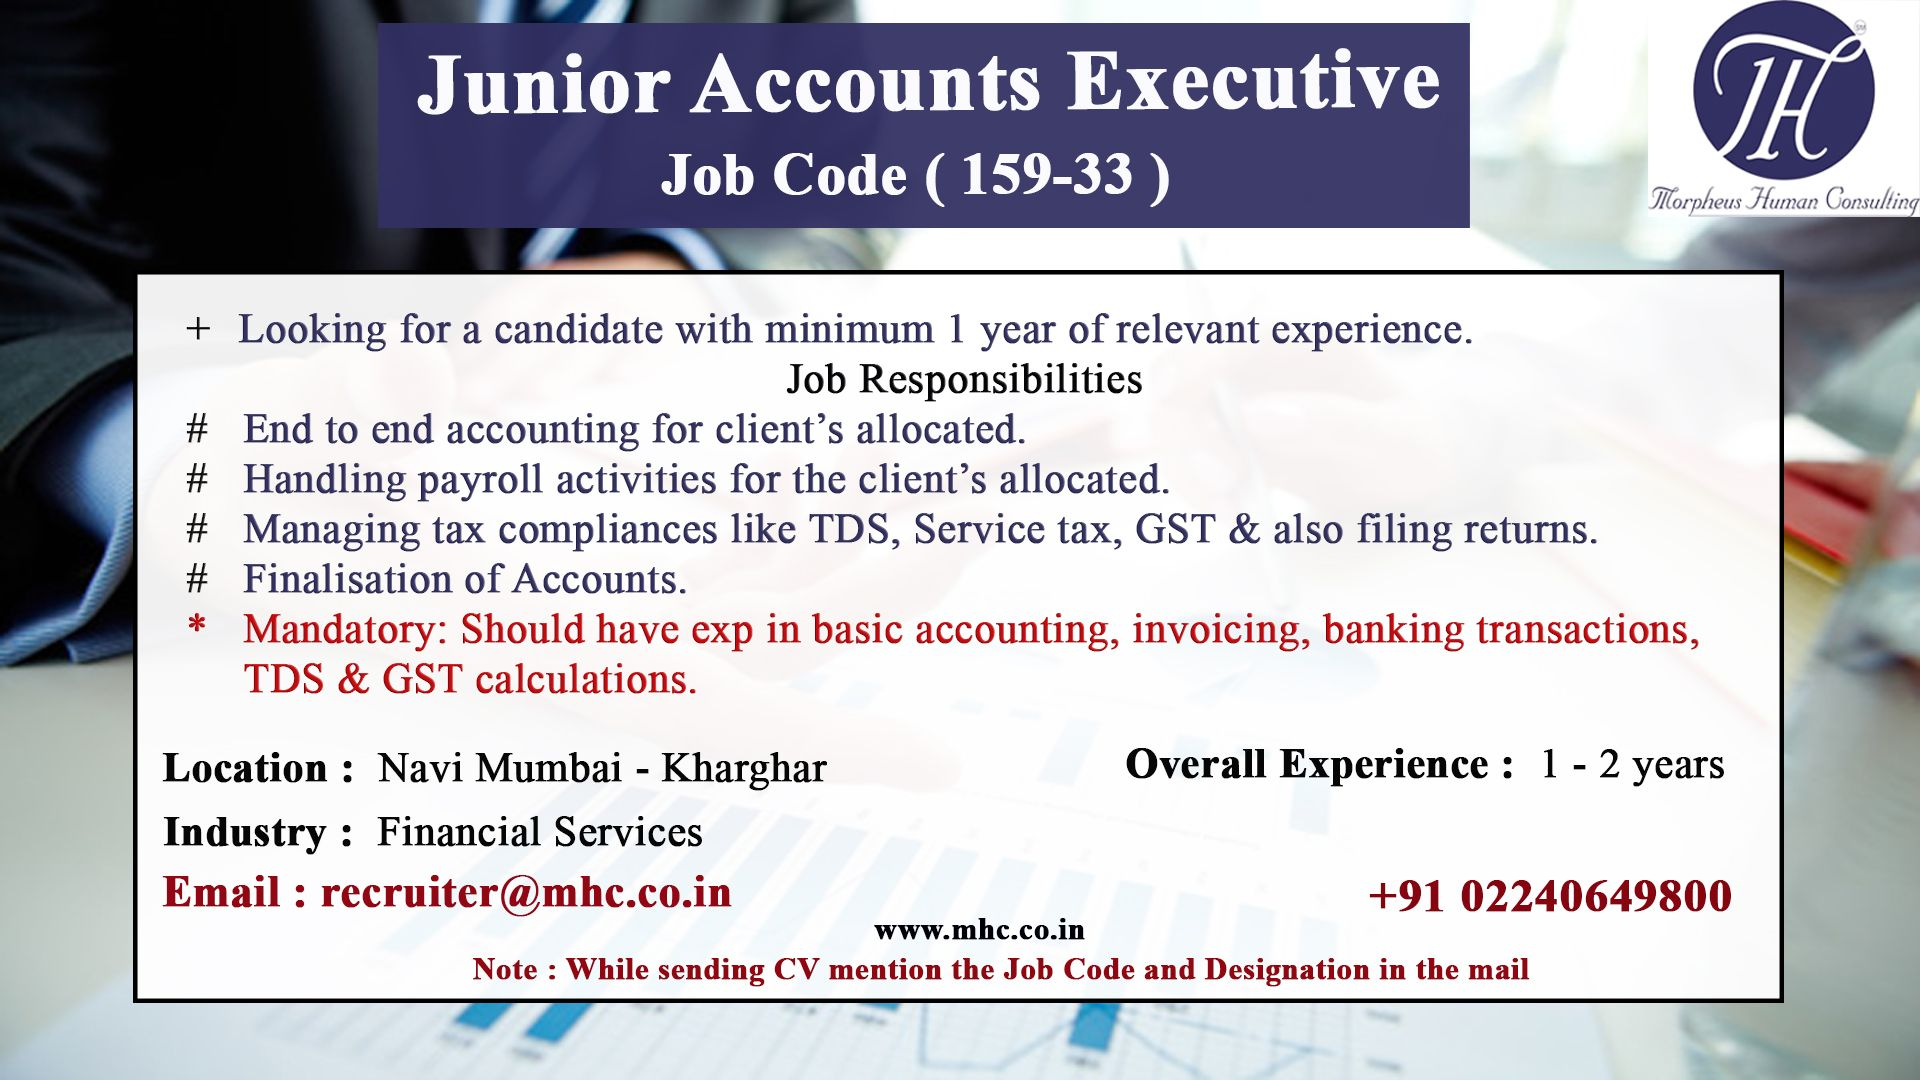 We are looking for junior accounts executive for our